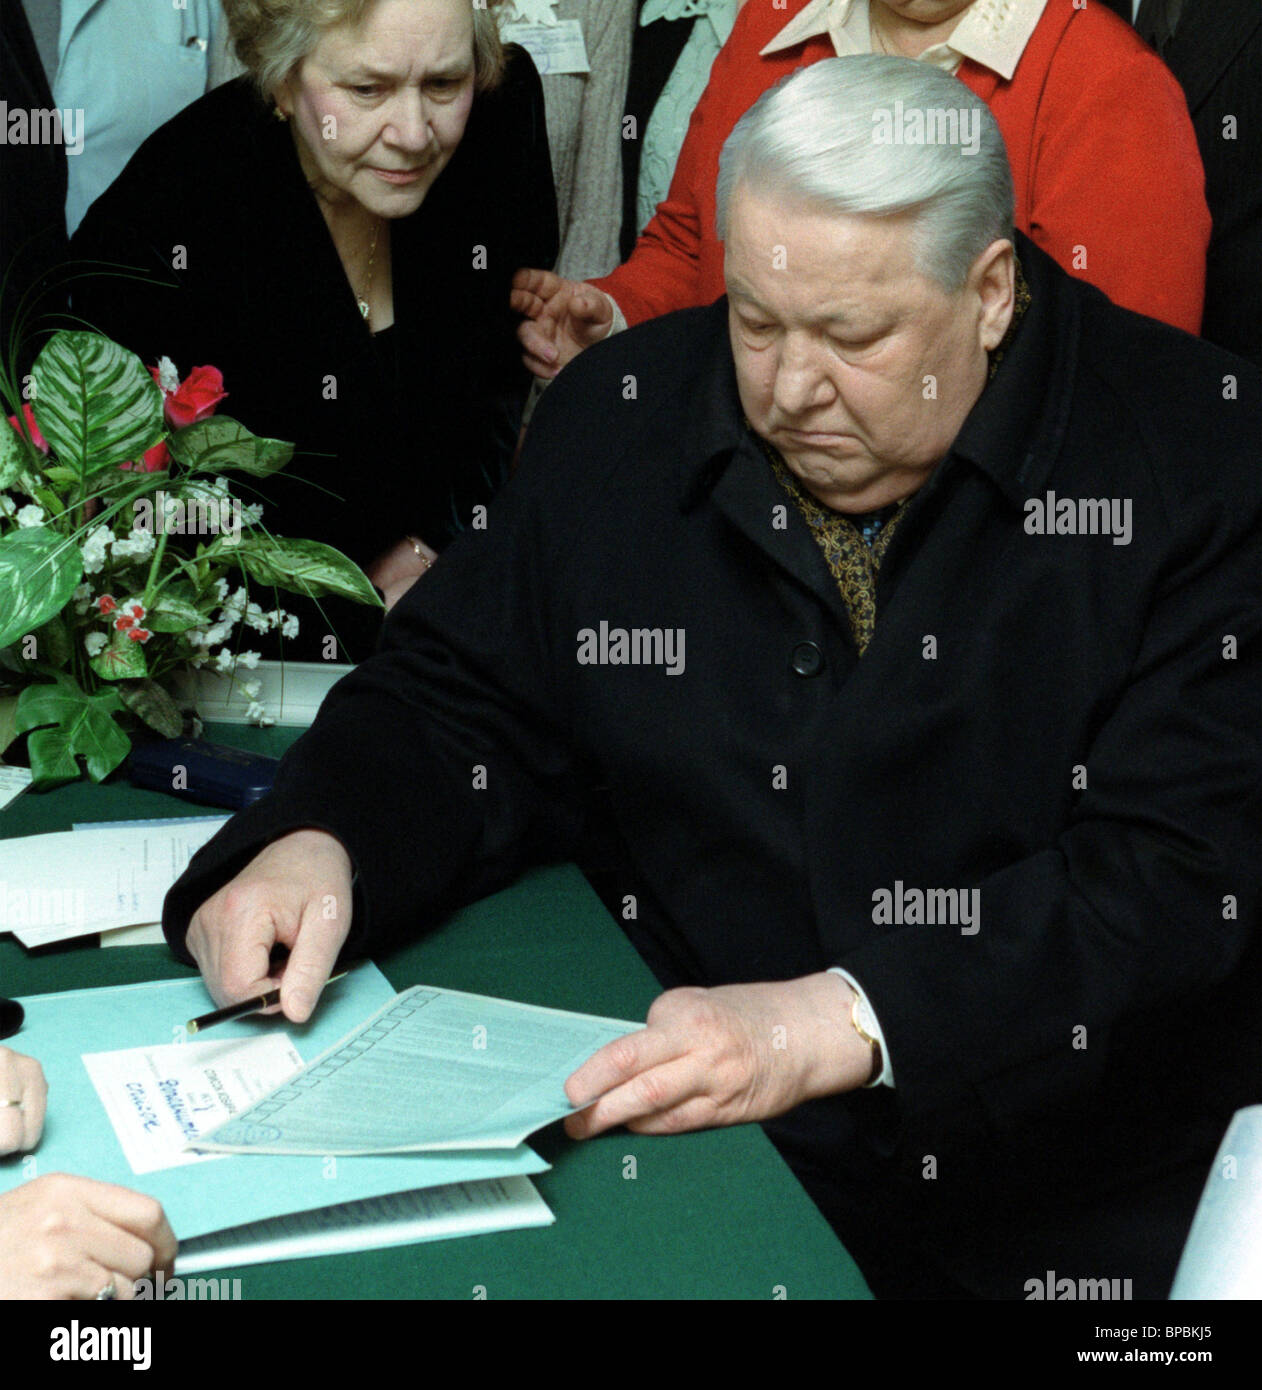 Former Russian President Boris Yeltsin participates in the elections, - Stock Image